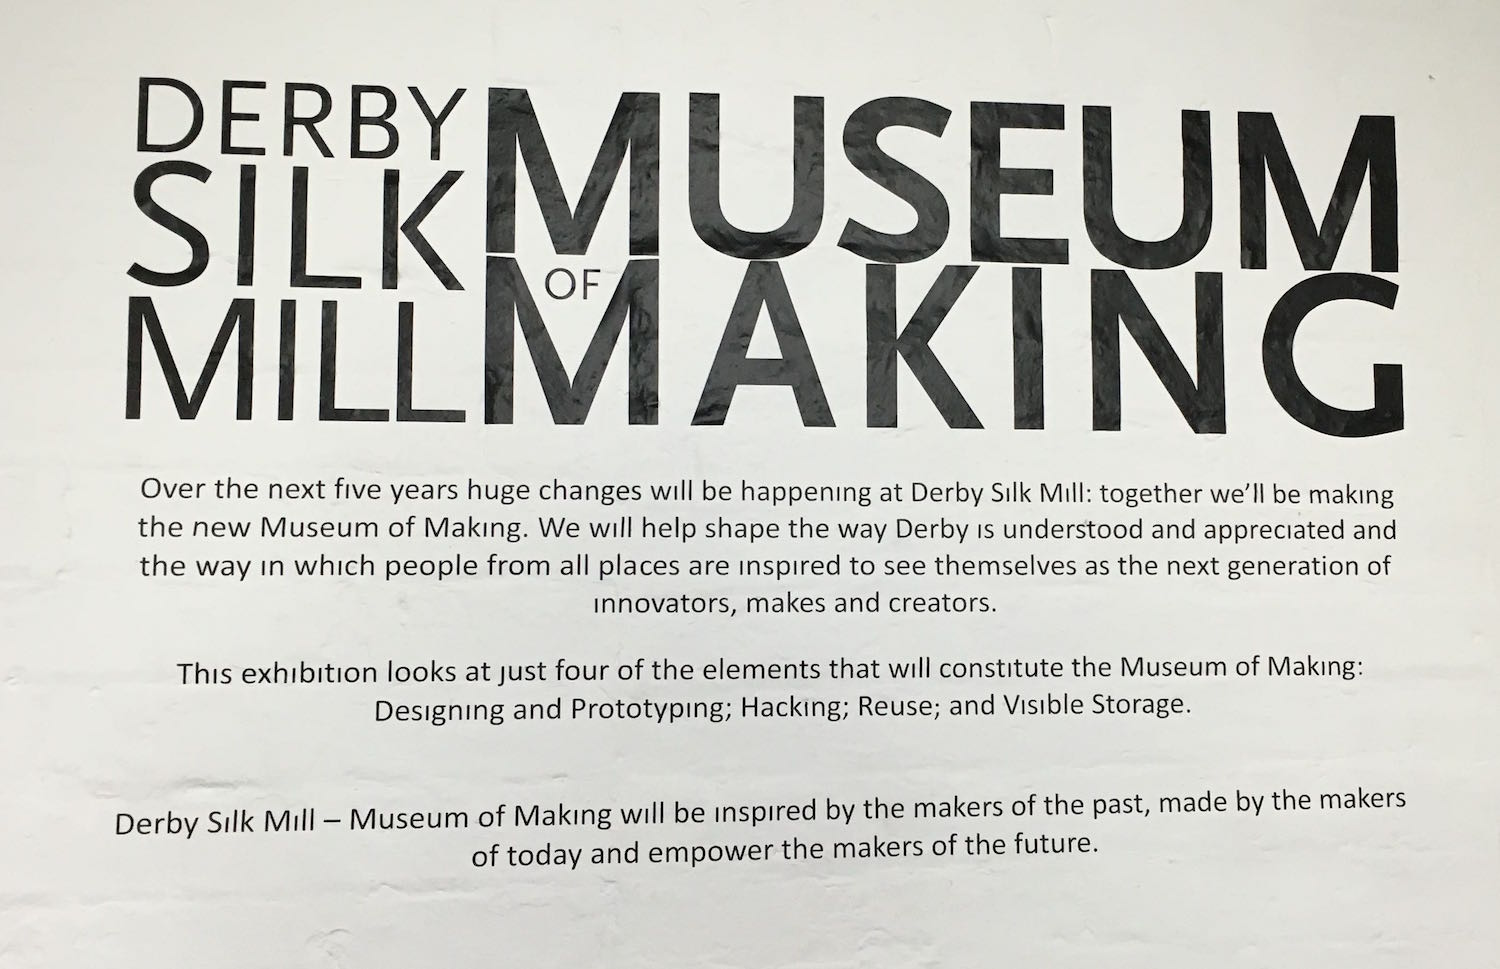 Derby Museum of Making sign on a wall. It reads 'Derby Silk Mill Museum of Making: Over the next five years huge changes will be happening at Derby Silk Mill. Together we'll be making the new Museum of Making. We will help shape the way Derby is understood and appreciated and the way in which people fro all places are inspired to see themselves as the next generation of innovators, makers and creators.'